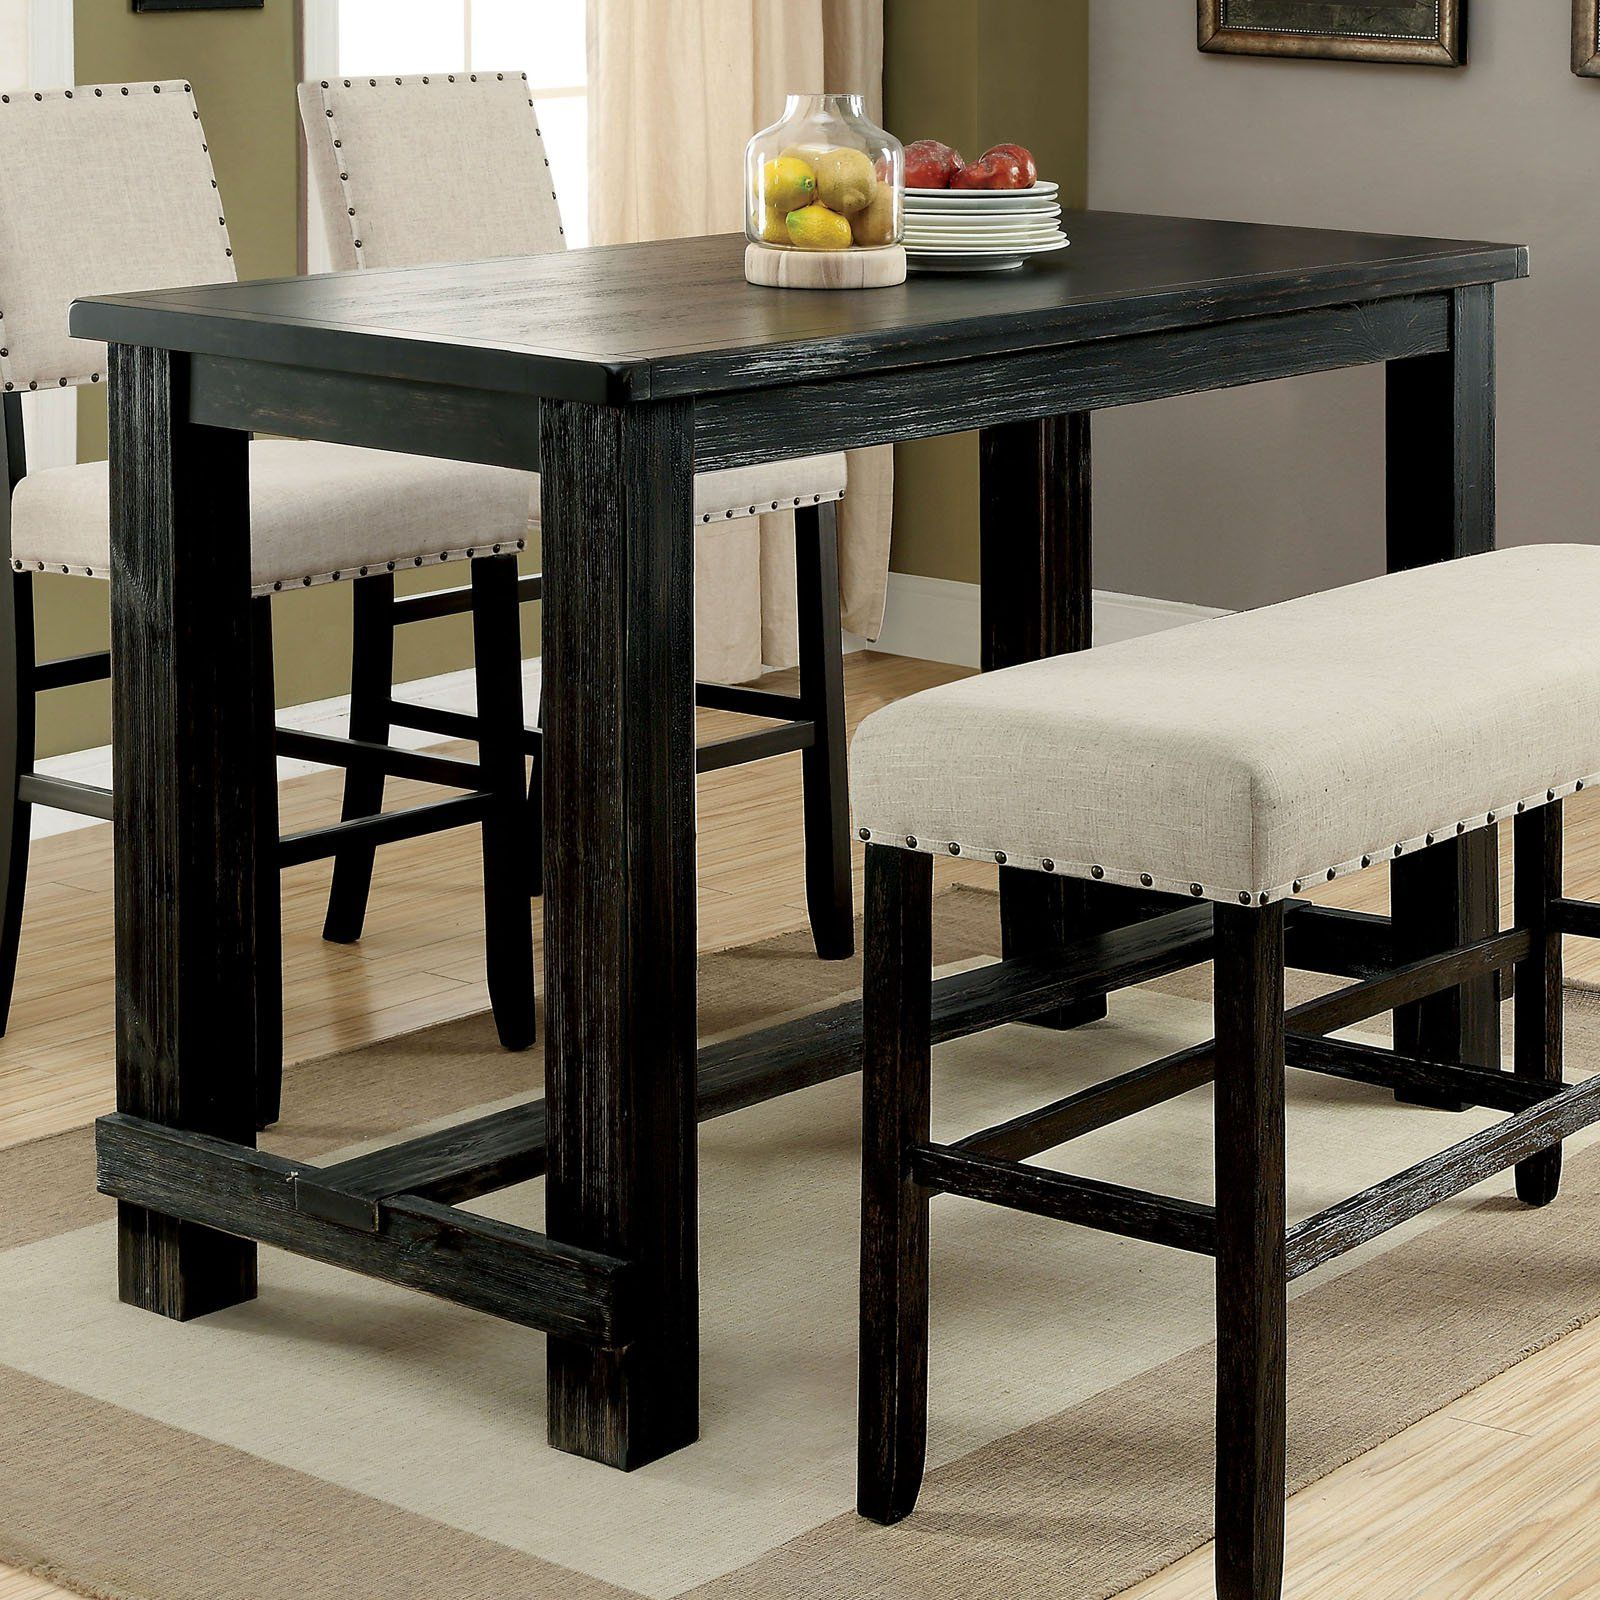 Furniture Of America Helin Ii Bar Height Dining Table In 2021 Bar Height Dining Table Dining Table In Kitchen Dining Table Black